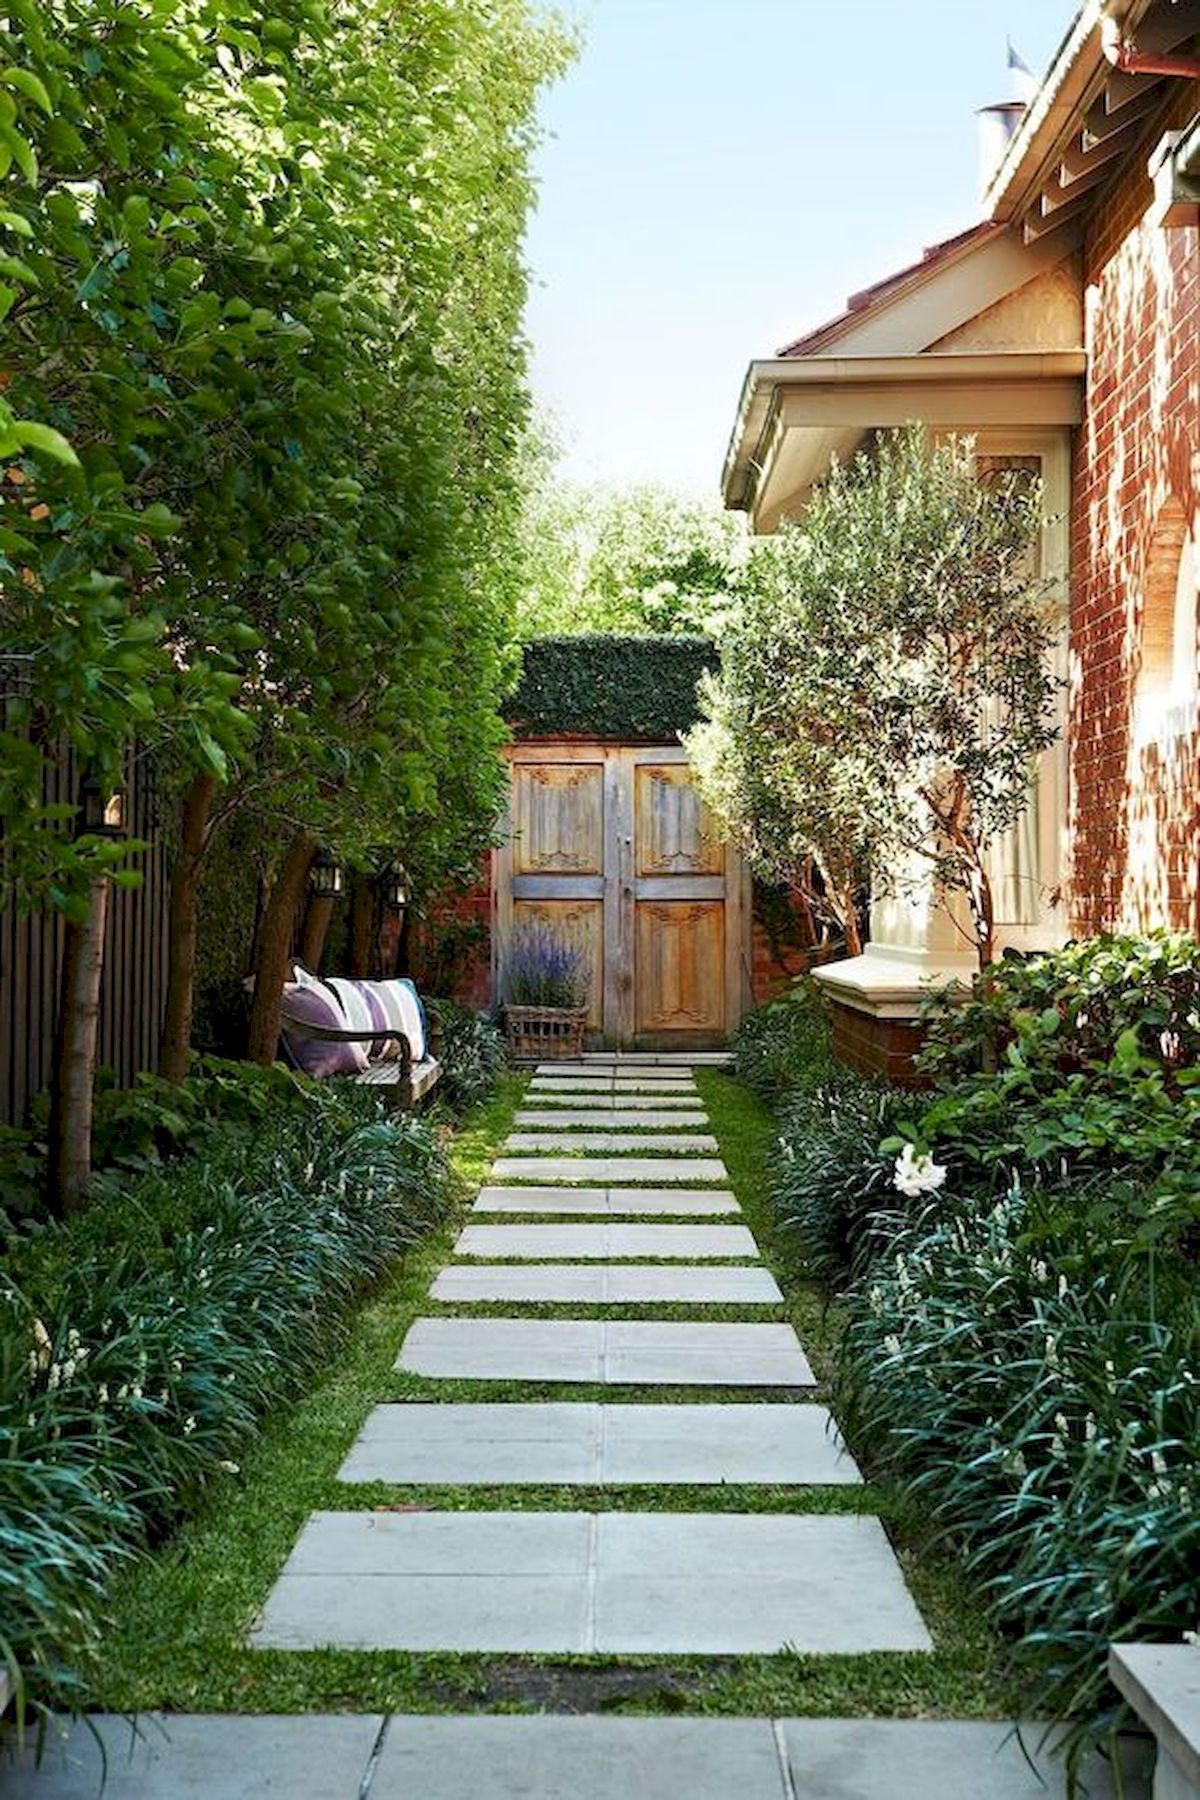 50 Beautiful Side Yard Garden Landscaping Ideas for Your House (43)